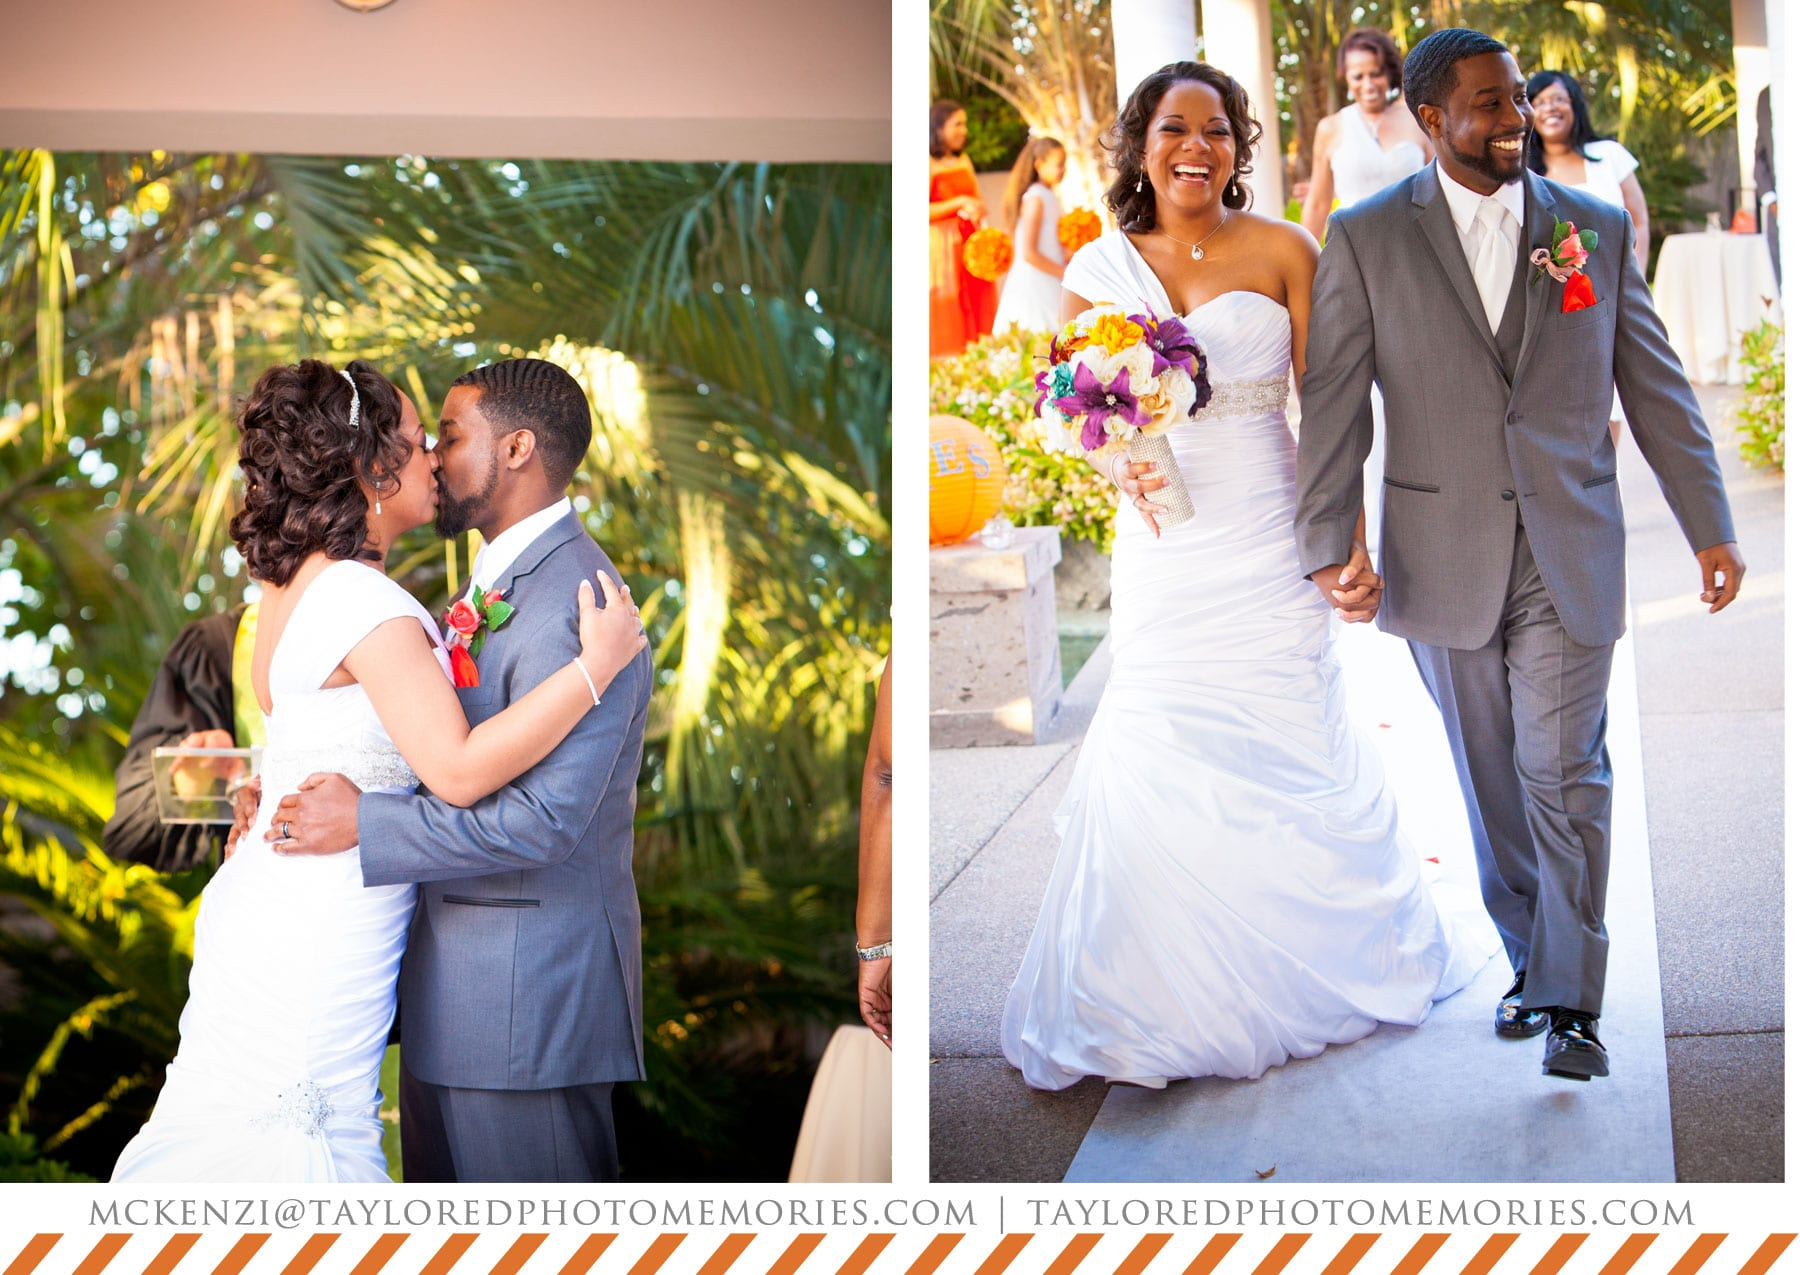 Elegant Las Vegas Wedding | Las Vegas Elopement Photographer | Taylored Photo Memories